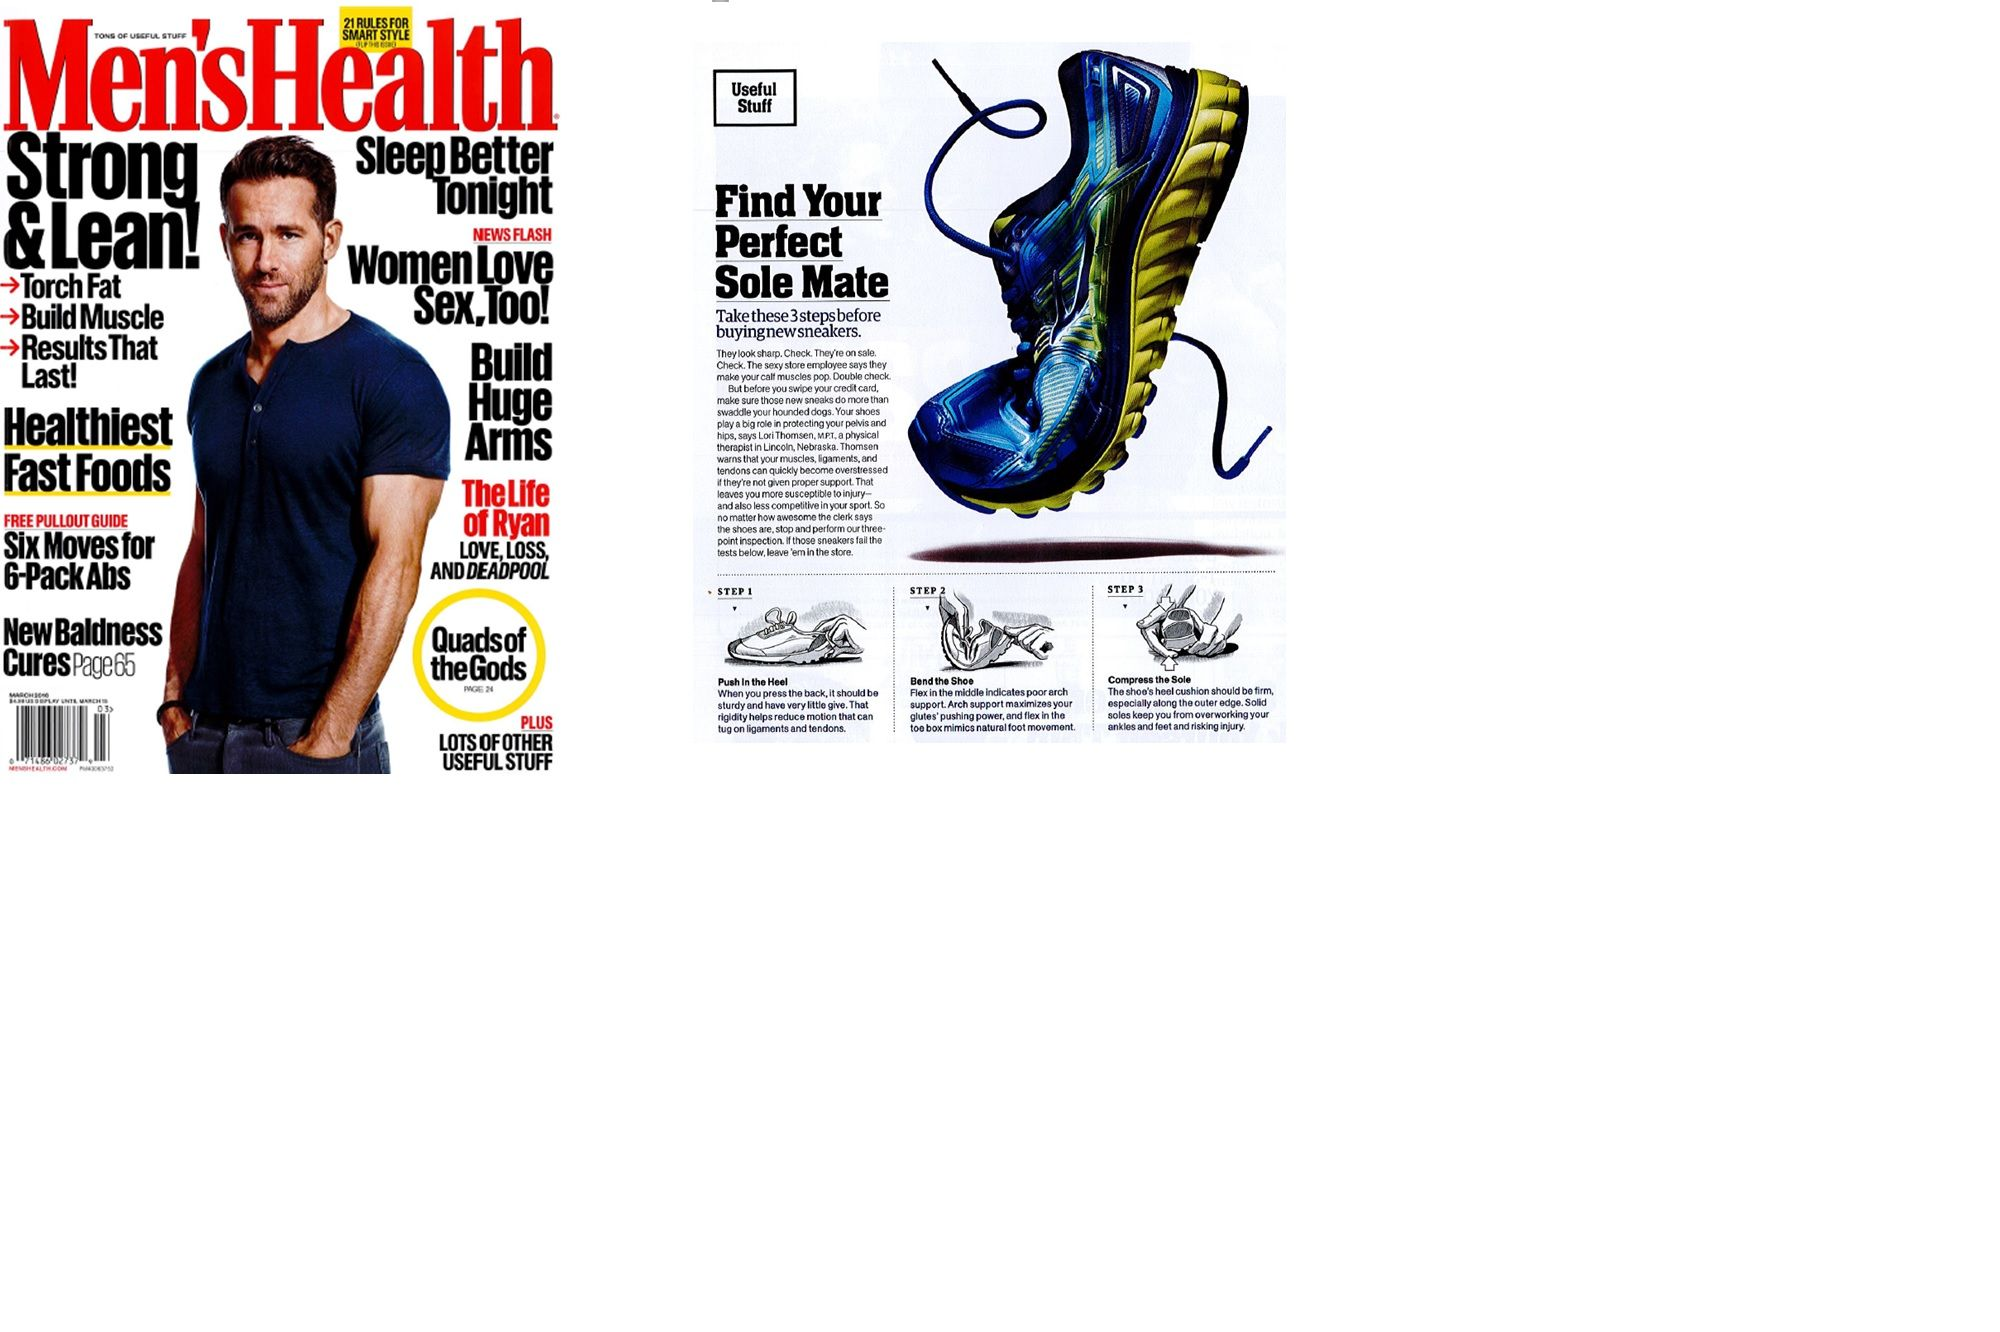 Hruska Clinic's Lori Thomsen Provides Insight into Shoewear in the March Issue of Men's Health